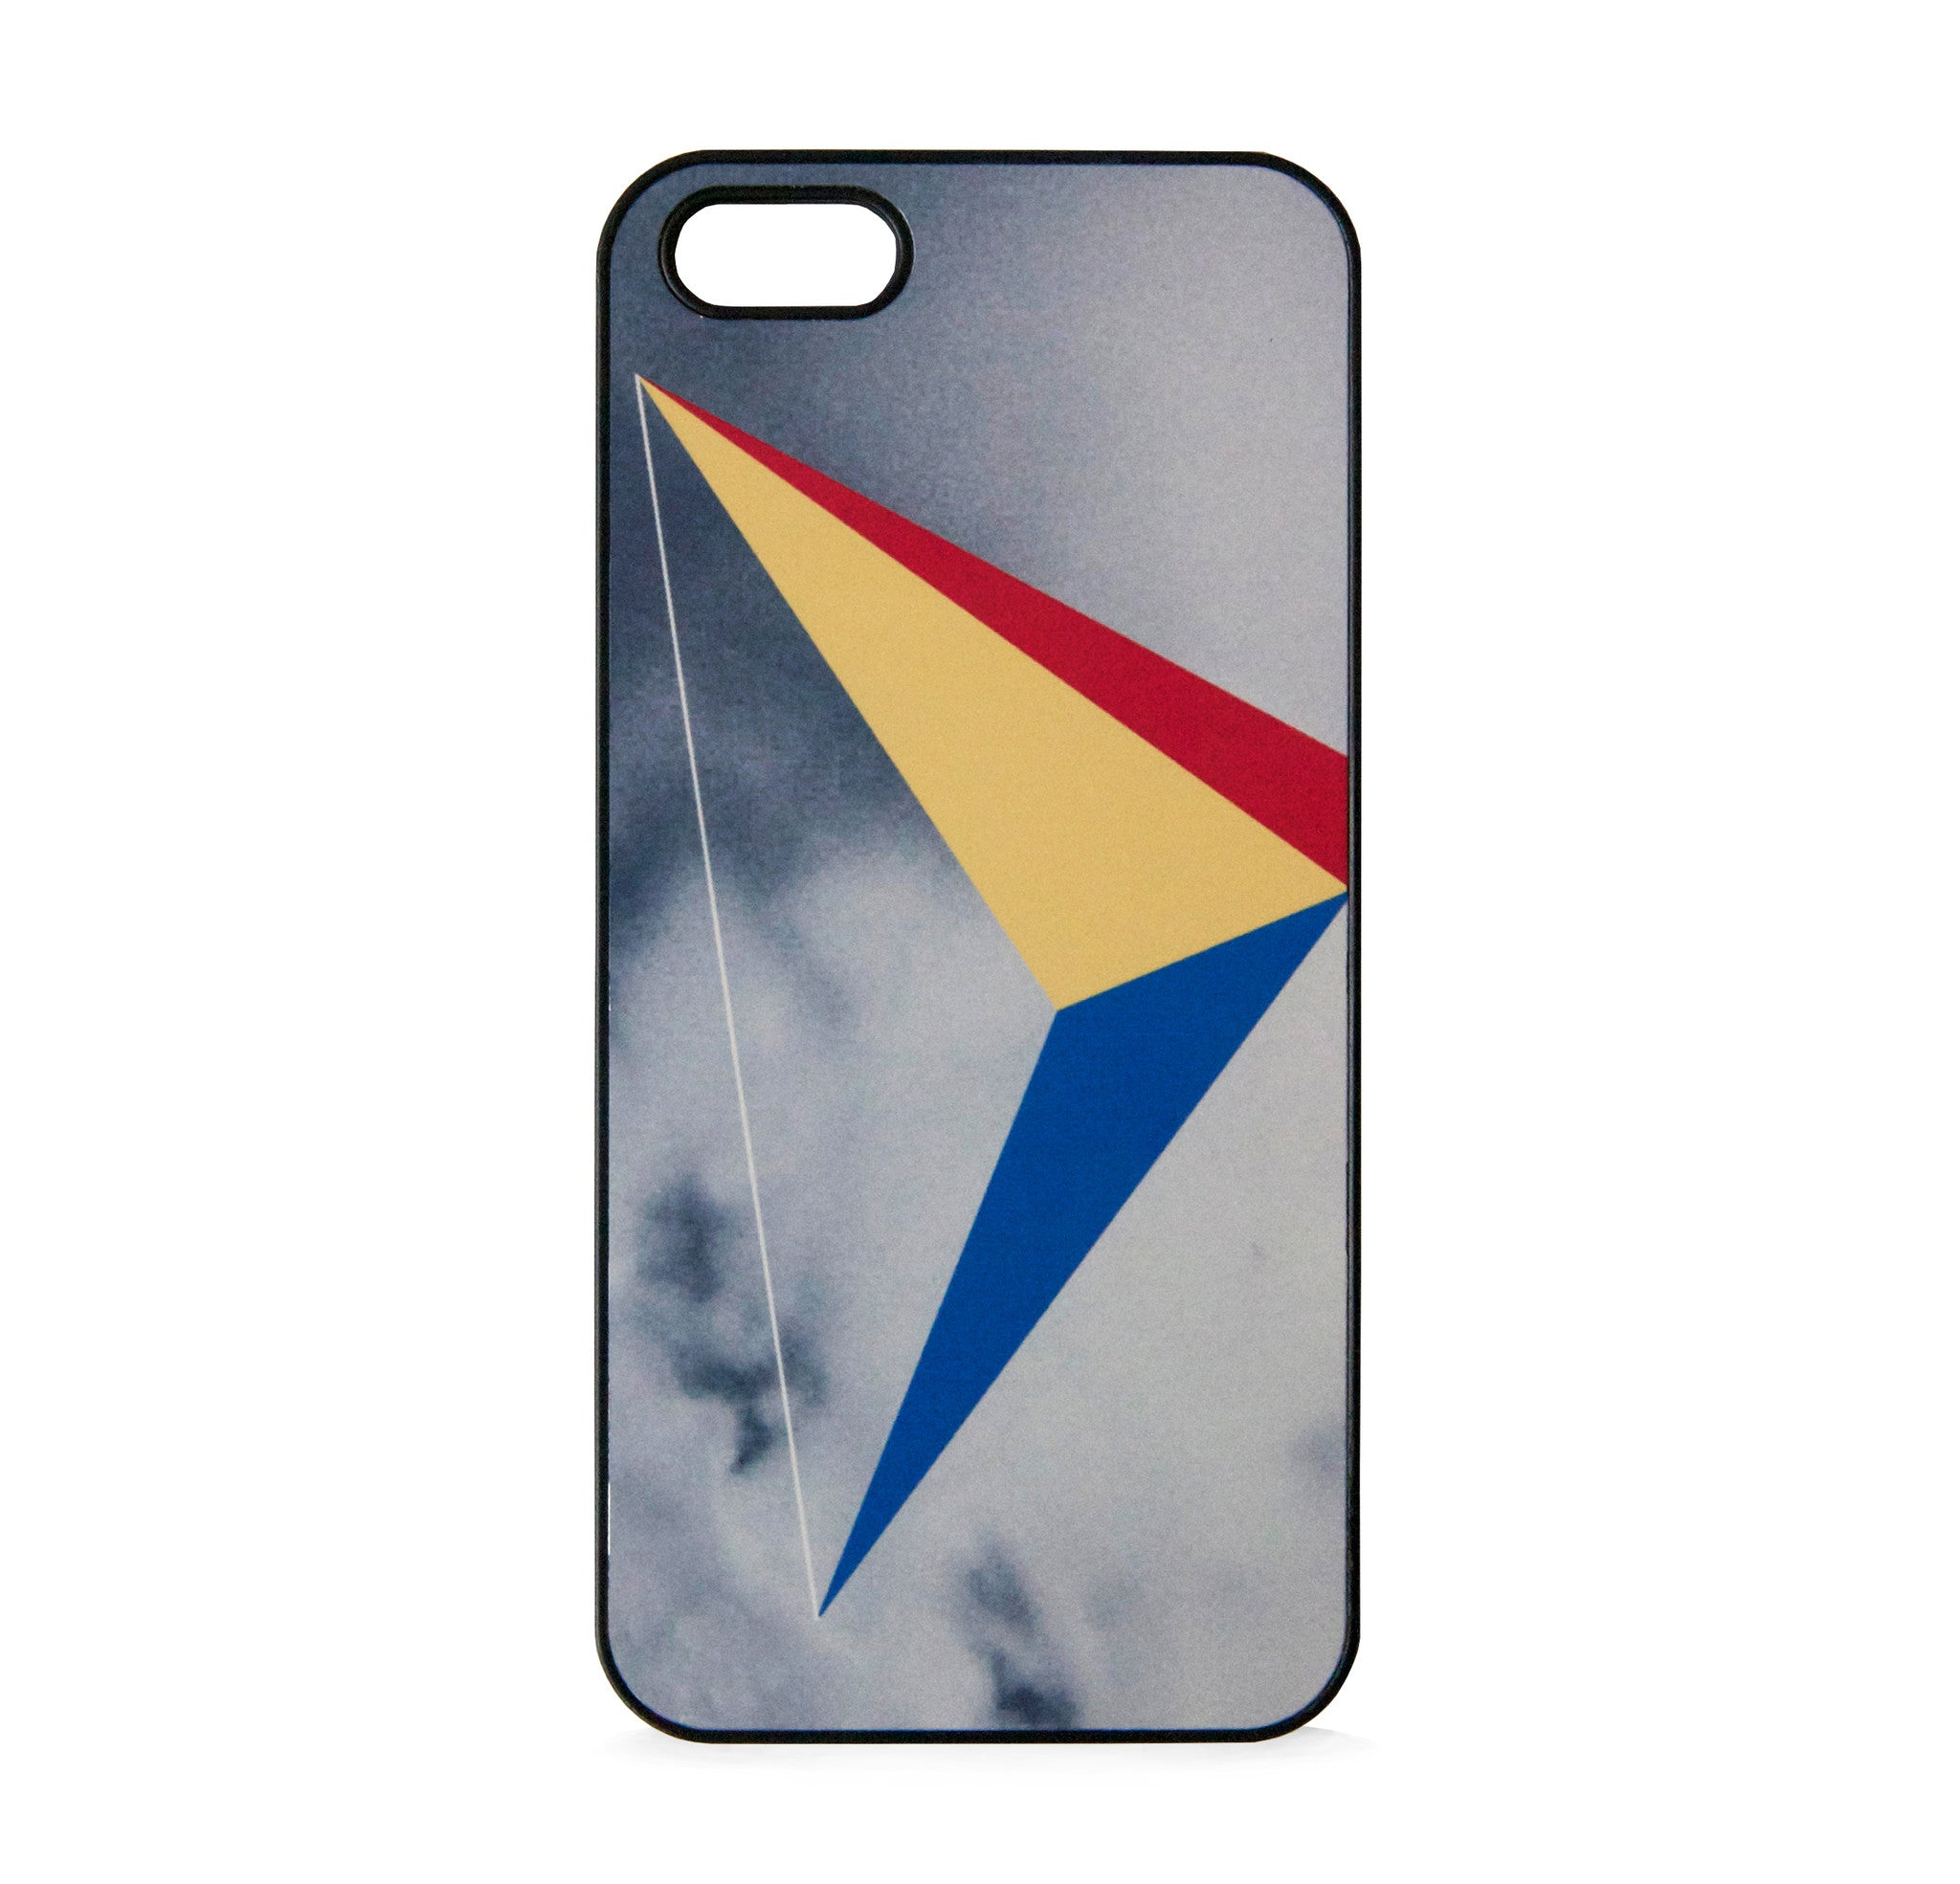 COLOR BLOCK CLOUD BOLD IPHONE 5/5S CASE